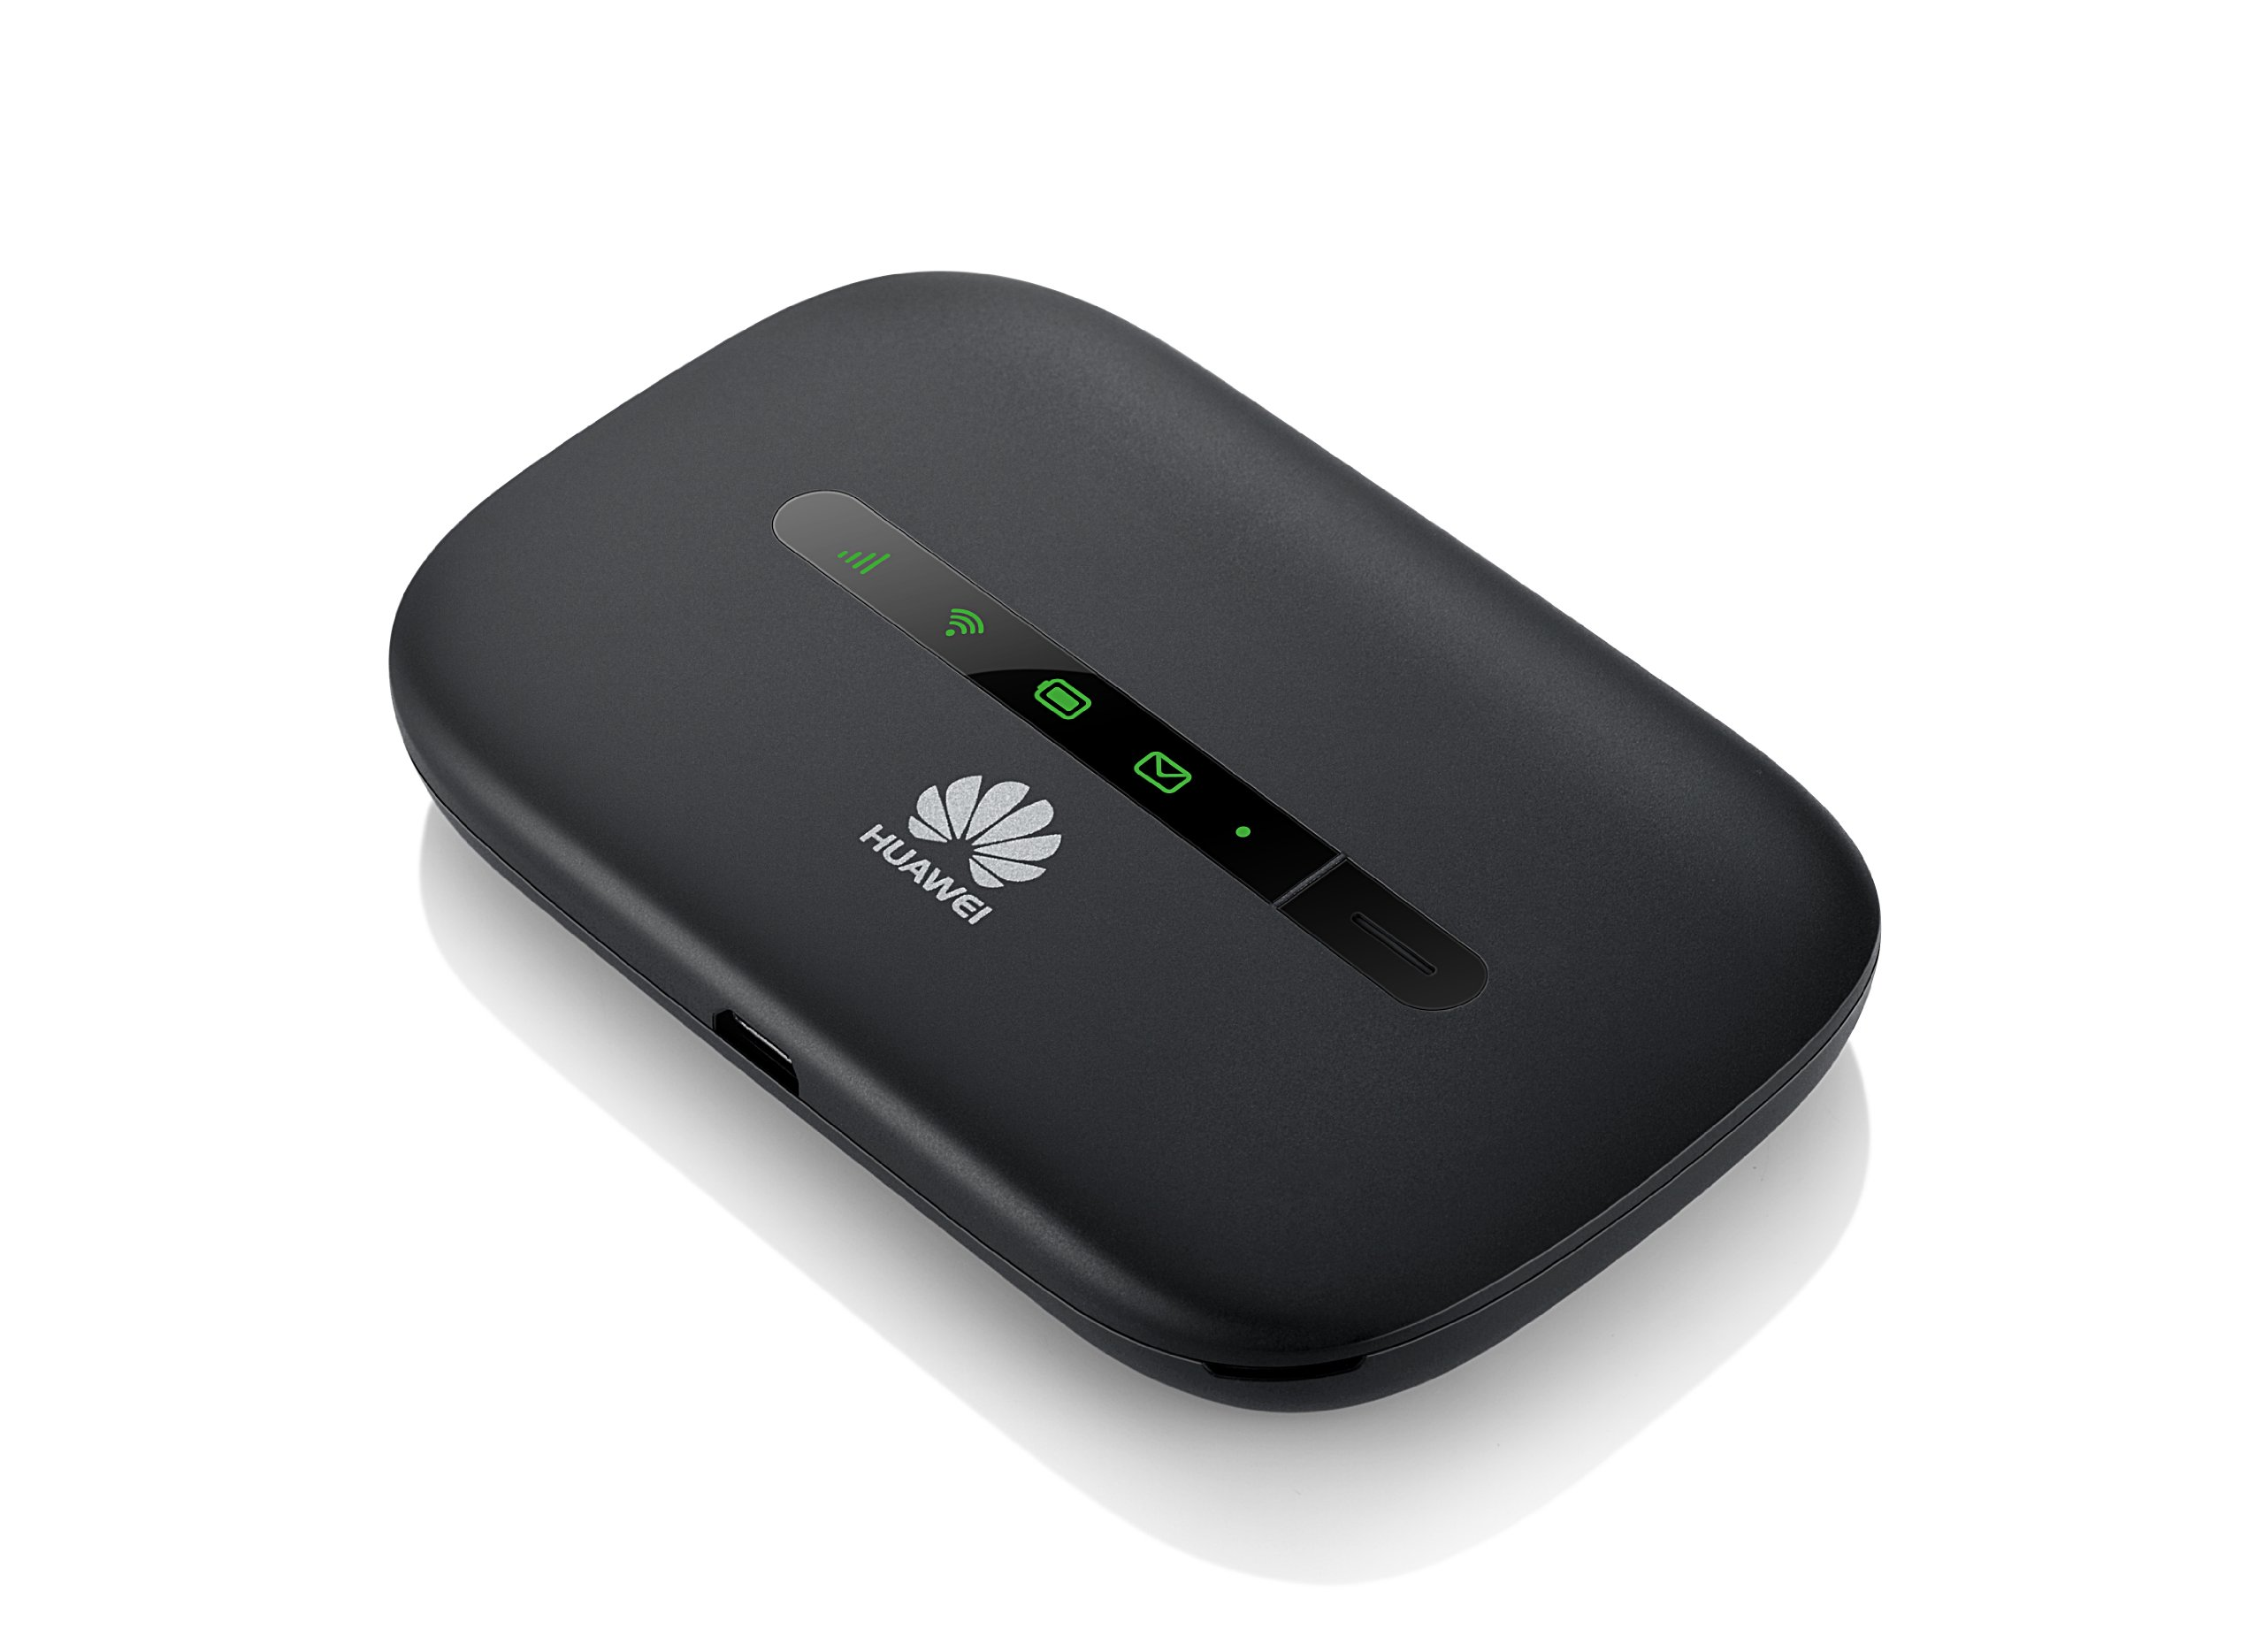 Huawei E5330Bs-2 21 Mbps 3G Mobile WiFi Hotspot (3G in Europe, Asia, Middle East & Africa) (black) by Huawei (Image #5)